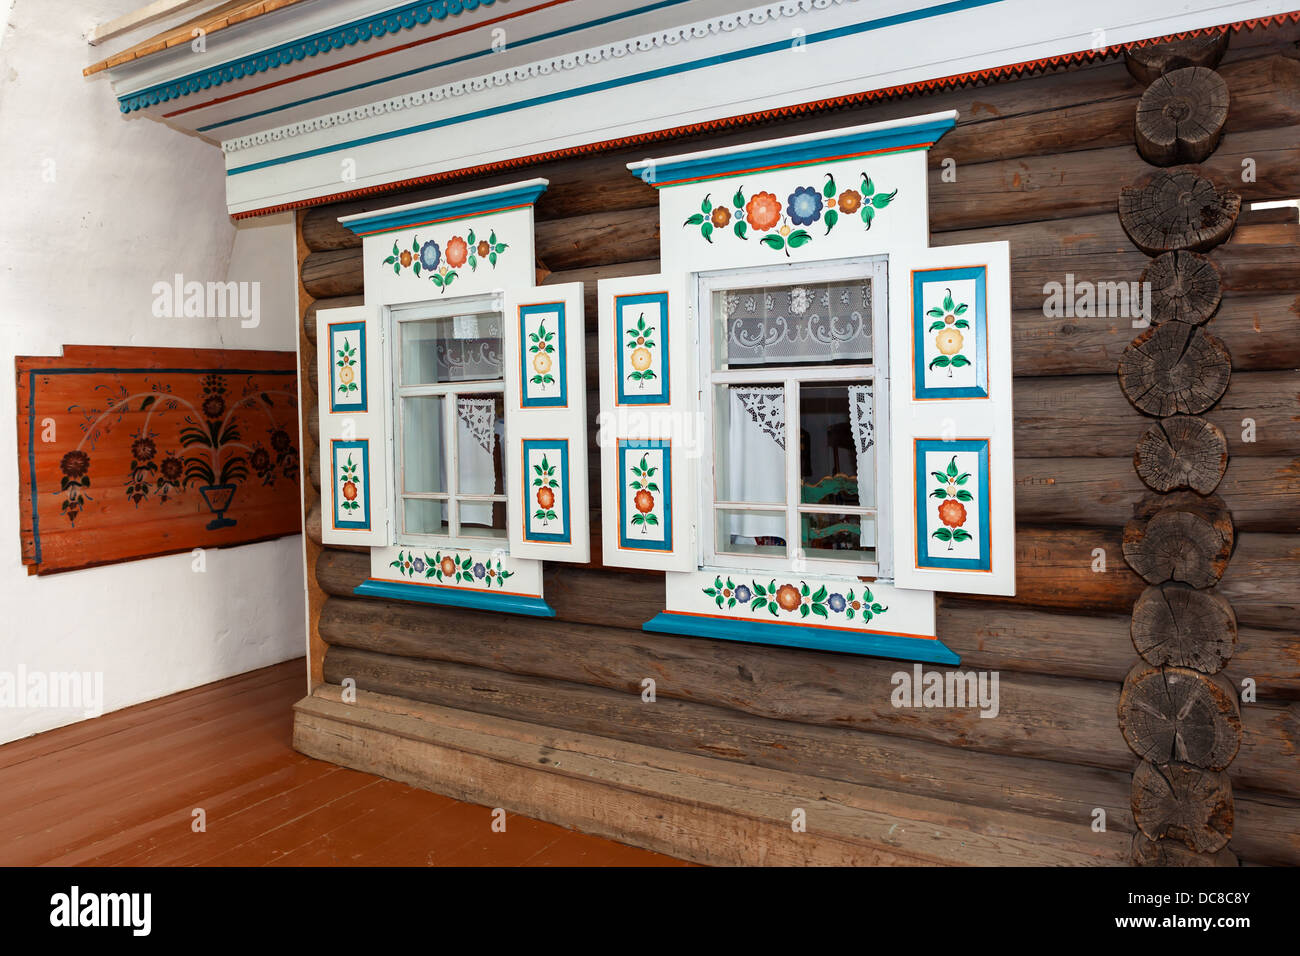 N. Sinyachikha Museum-Reserve of Wooden Architecture and Folk Art. The facade of the white sitting room. Brothers - Stock Image